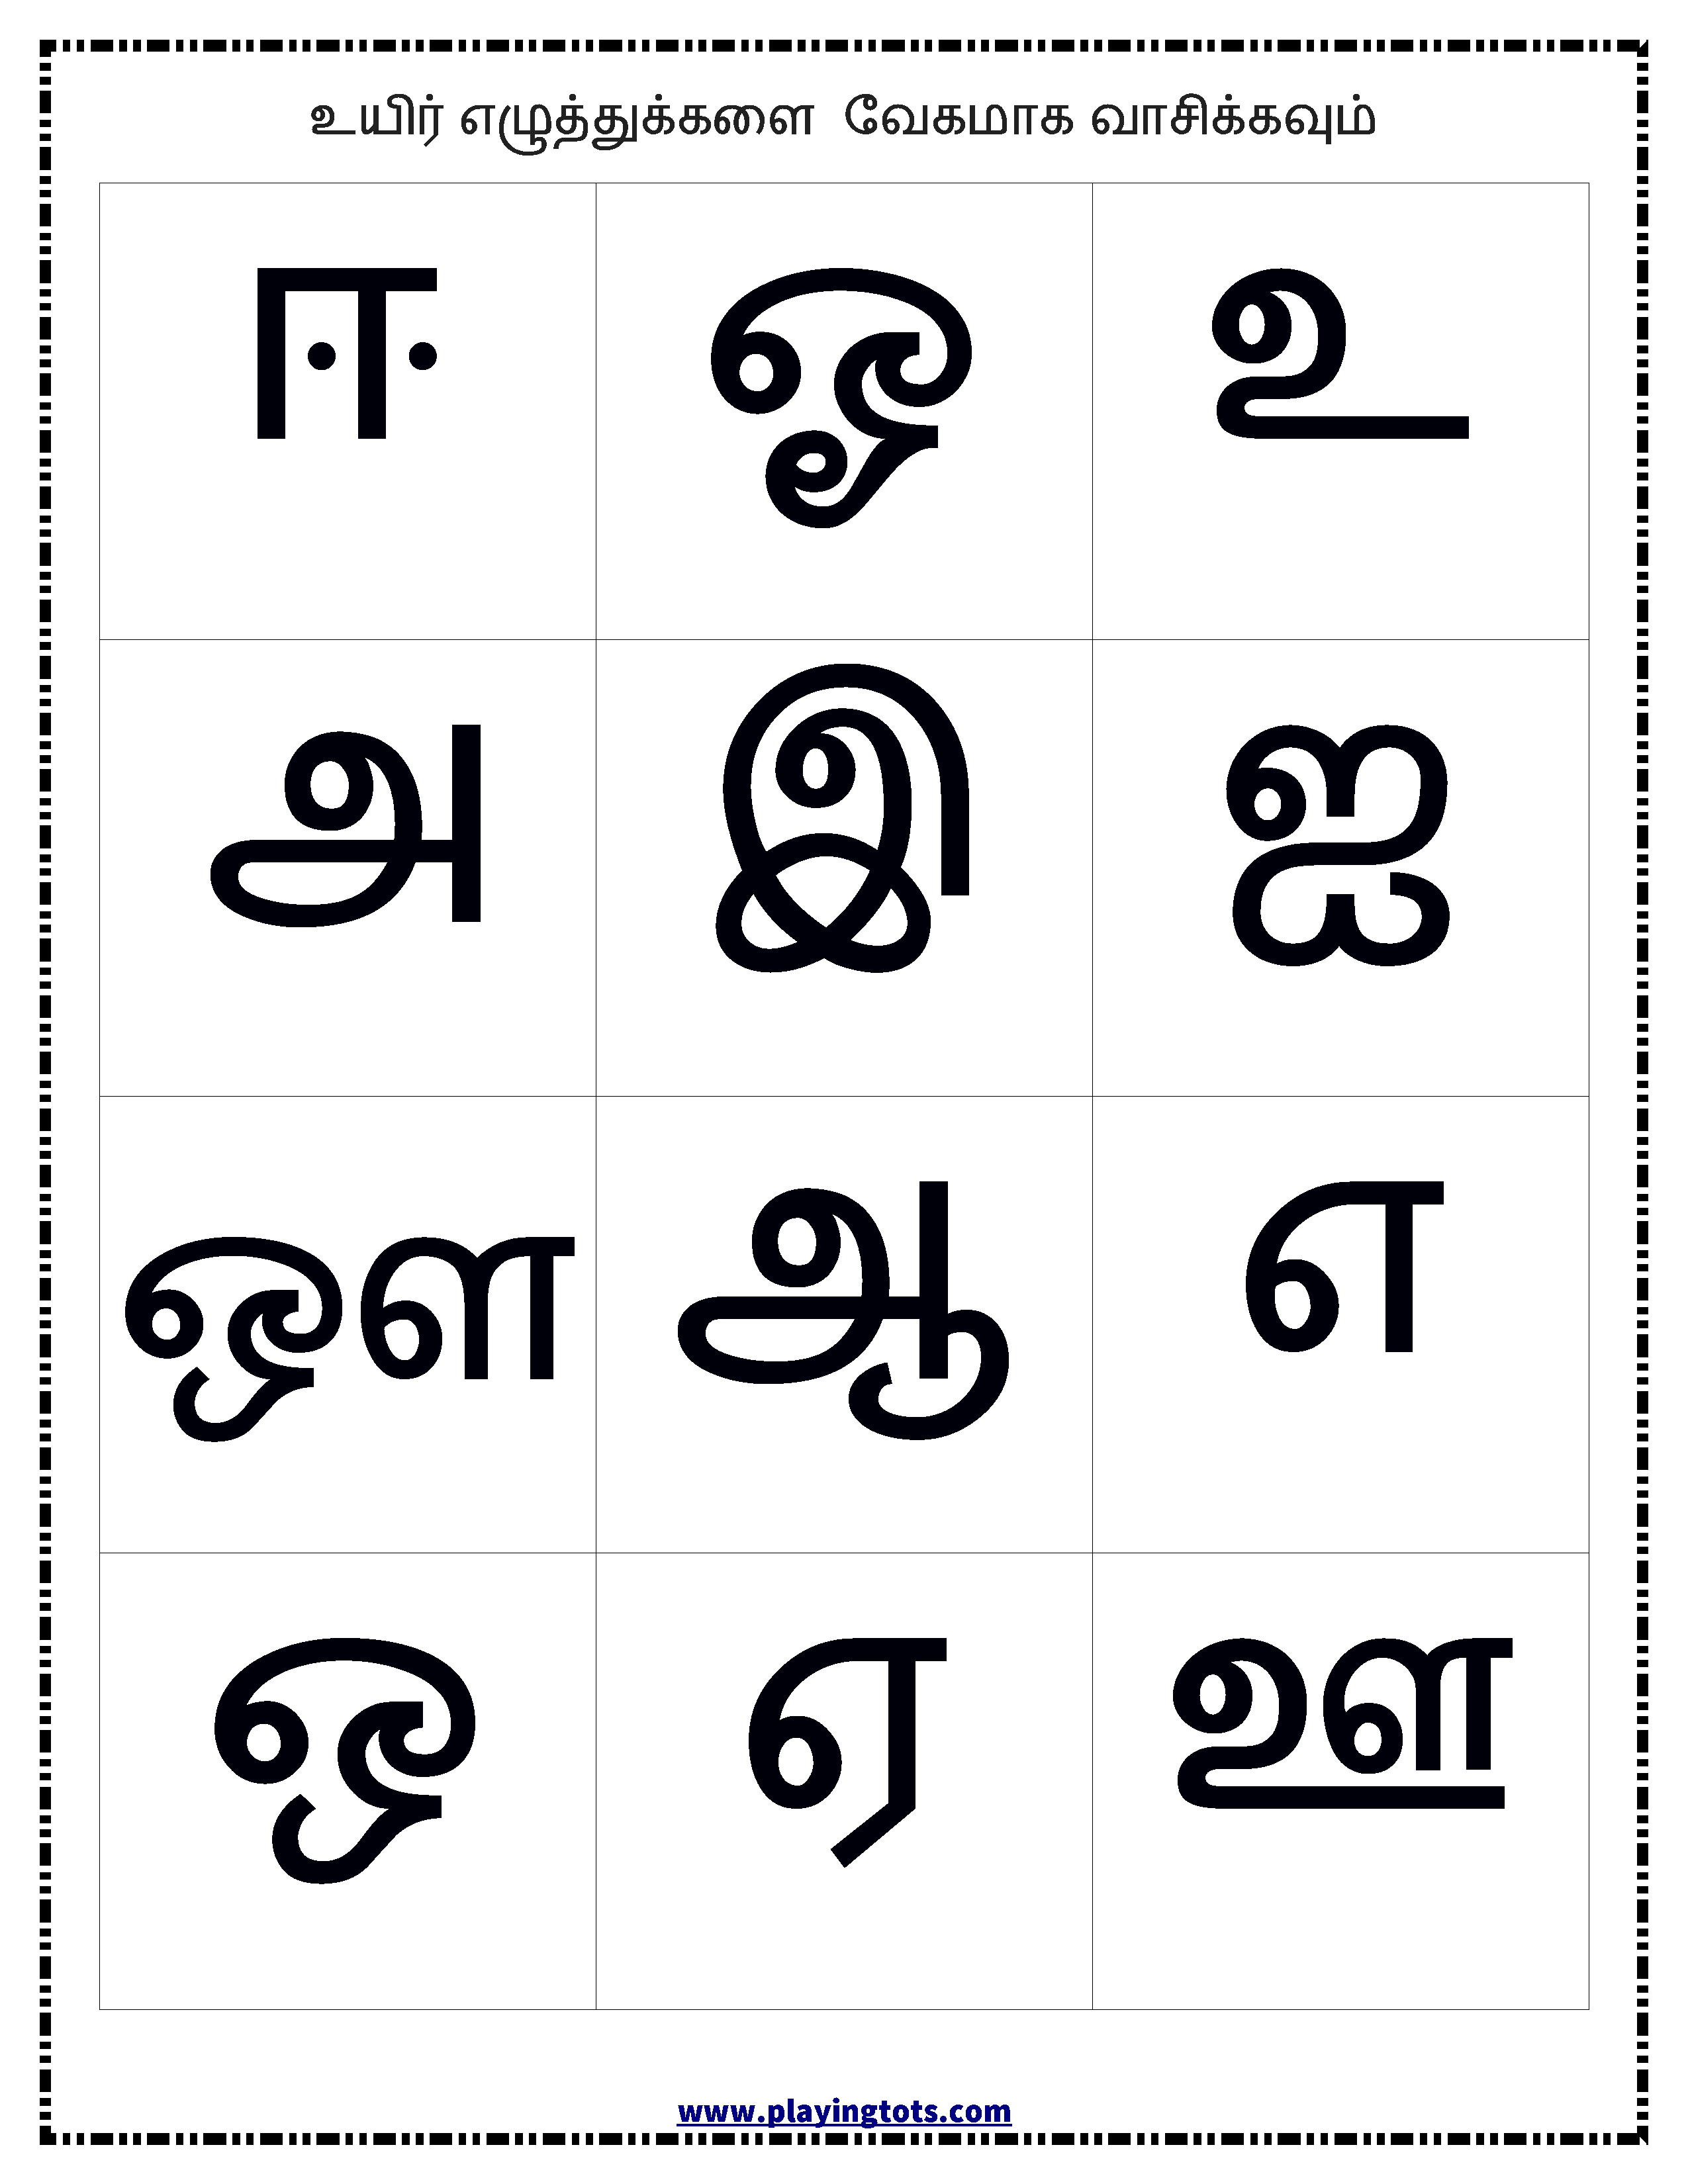 Tamil Handwriting Practice Worksheets